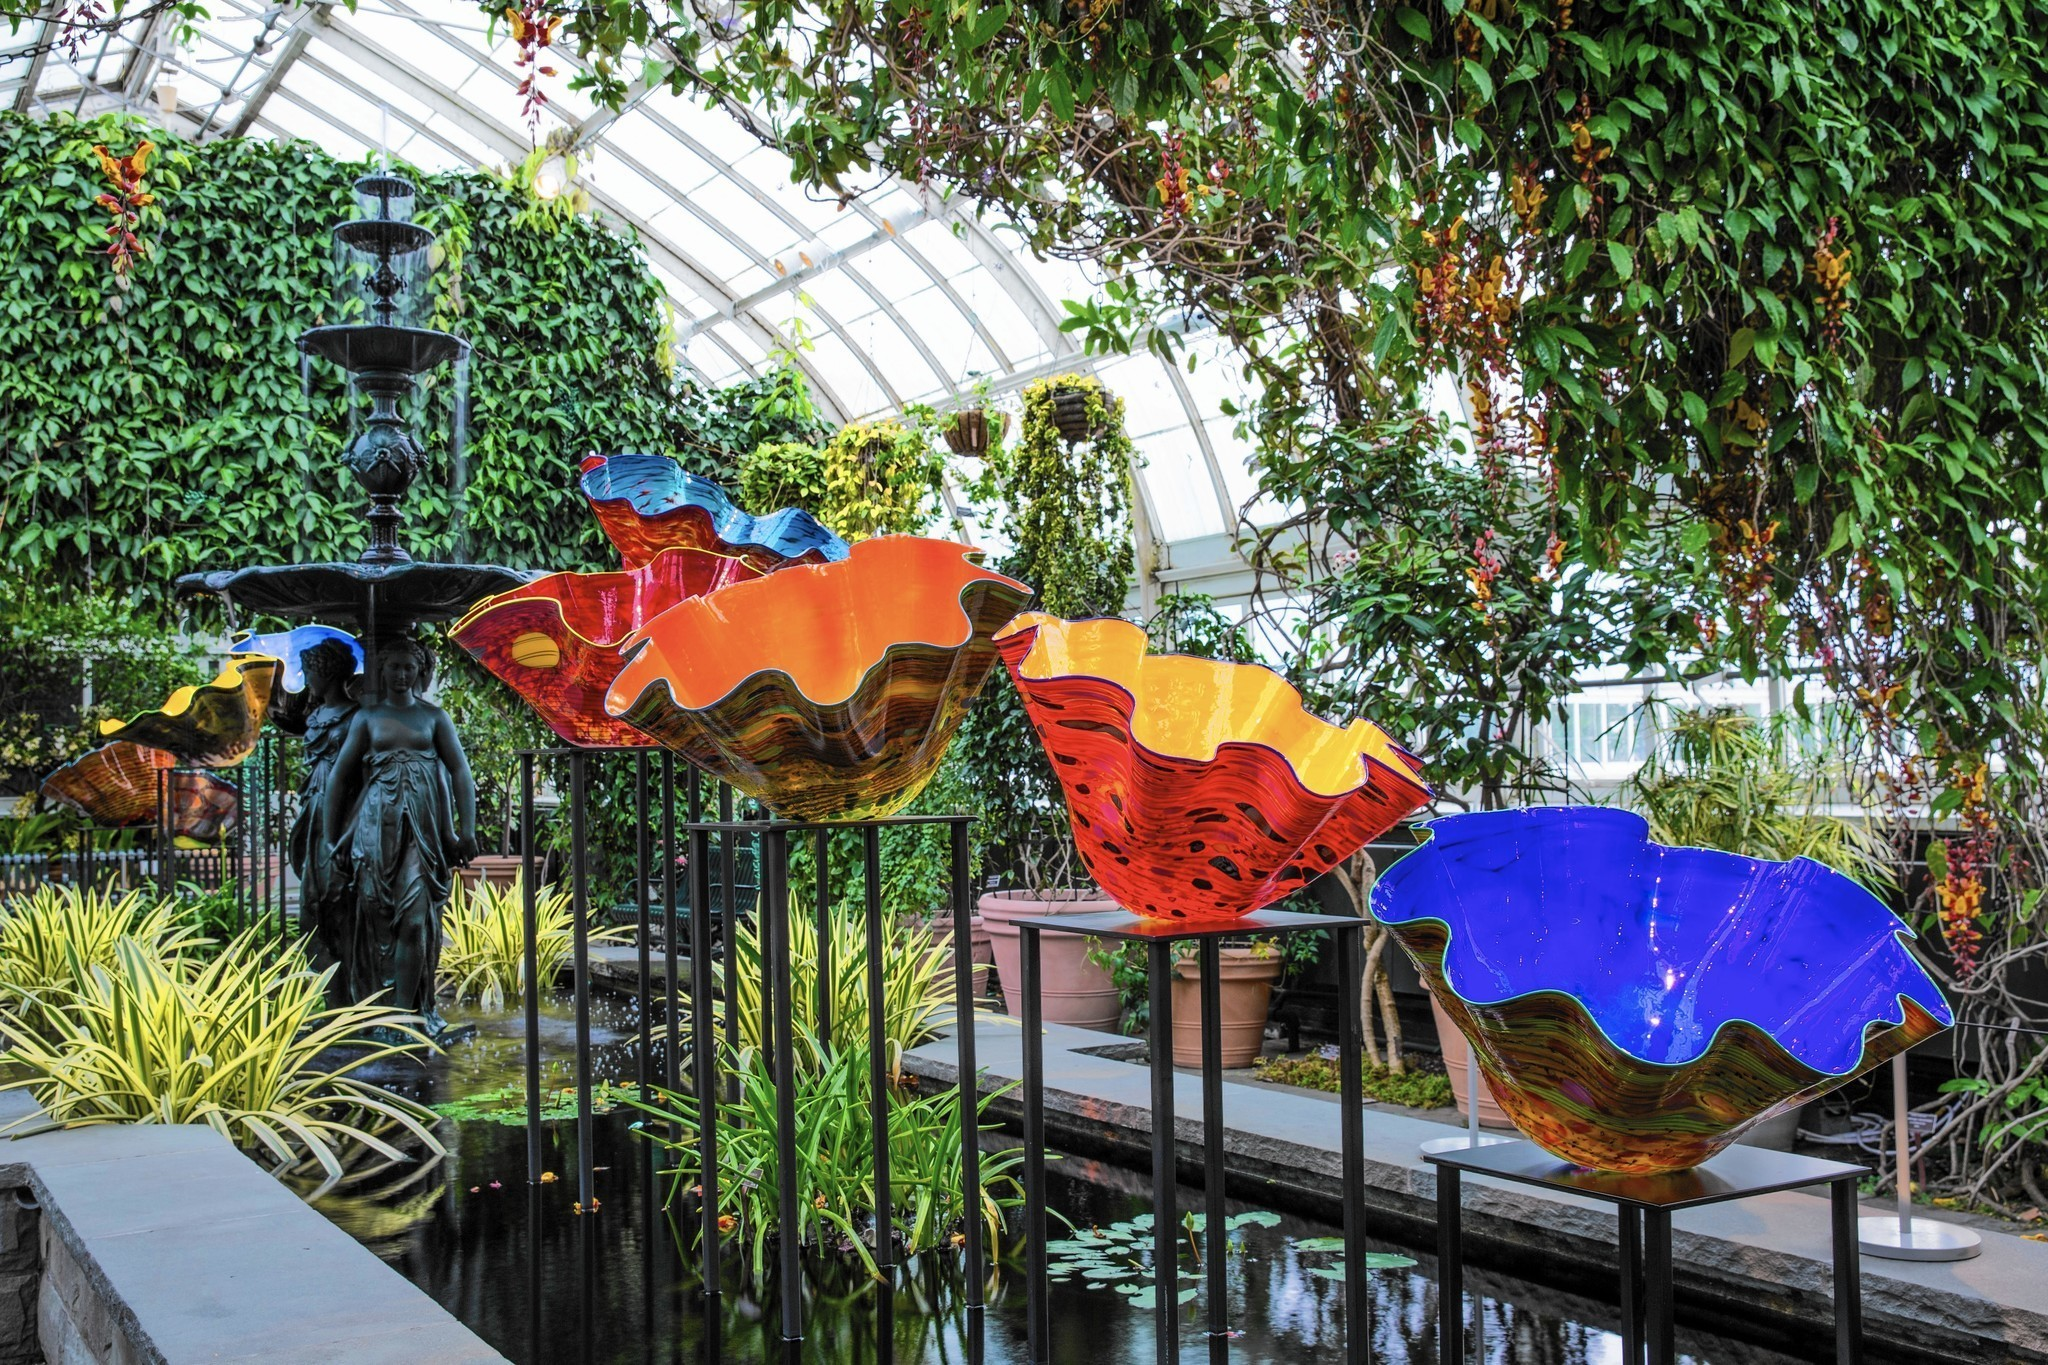 Chihuly glass exhibit blooms in the bronx chicago tribune - Bronx botanical garden free admission ...